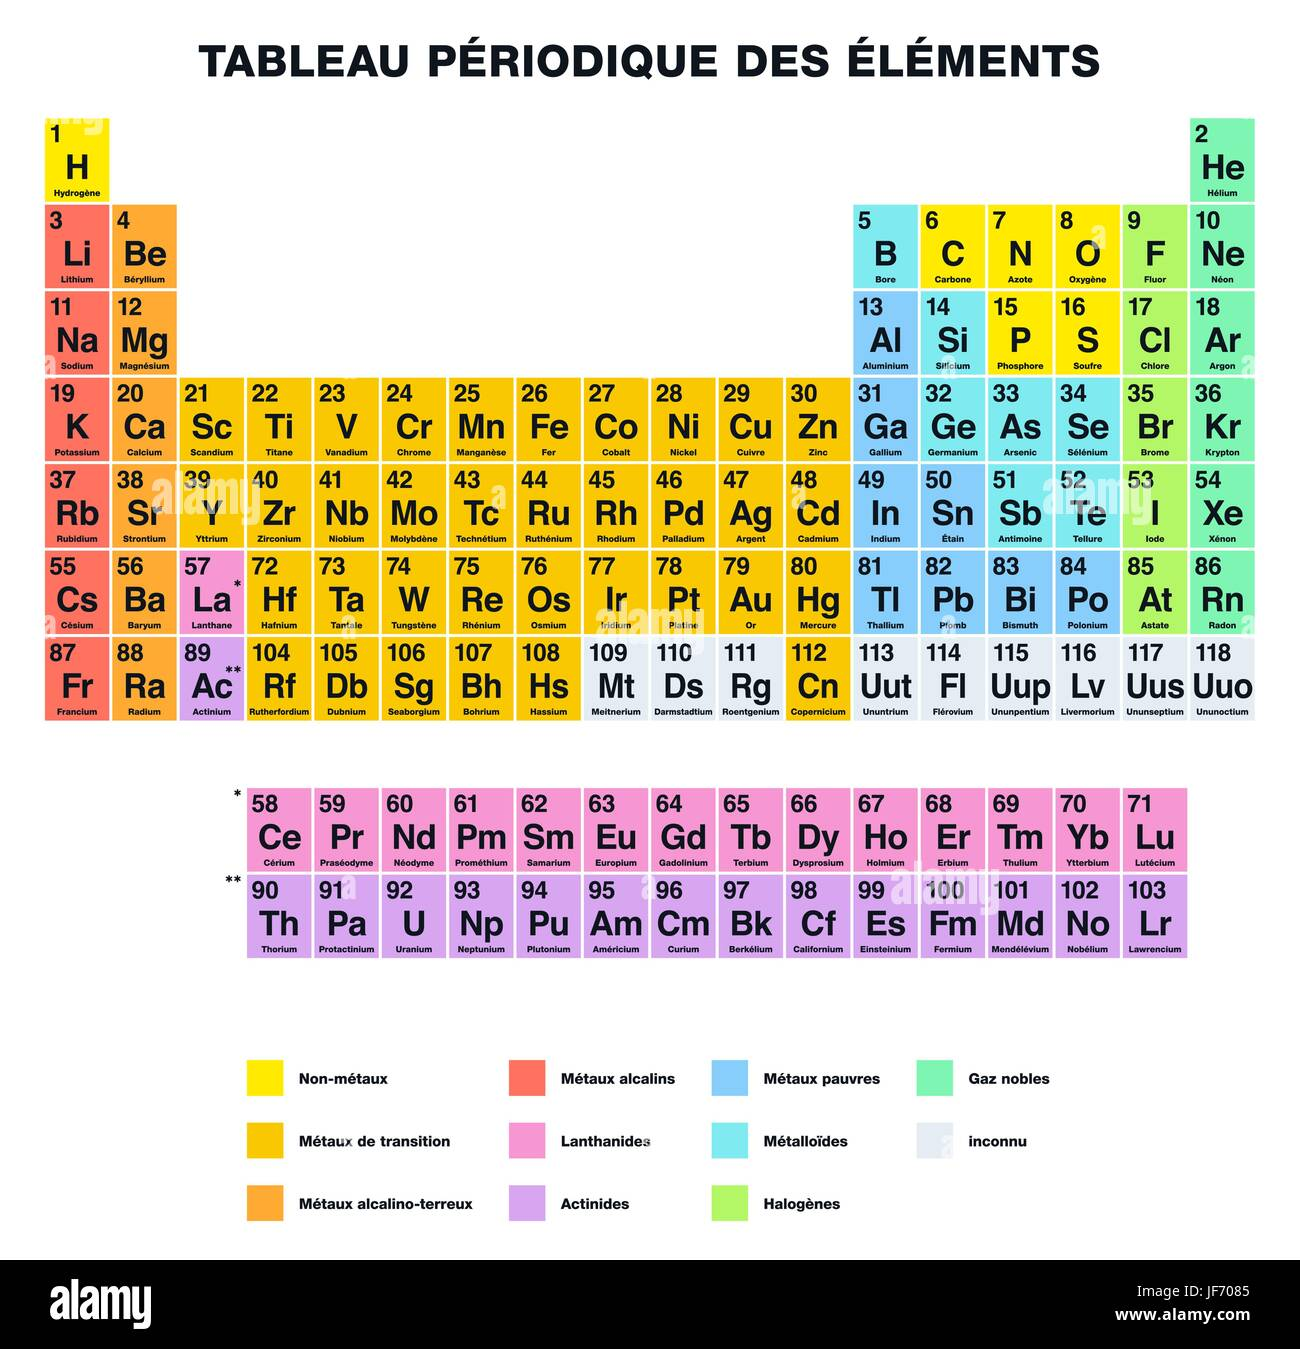 Periodic table of the elements french labeling stock vector art periodic table of the elements french labeling gamestrikefo Image collections